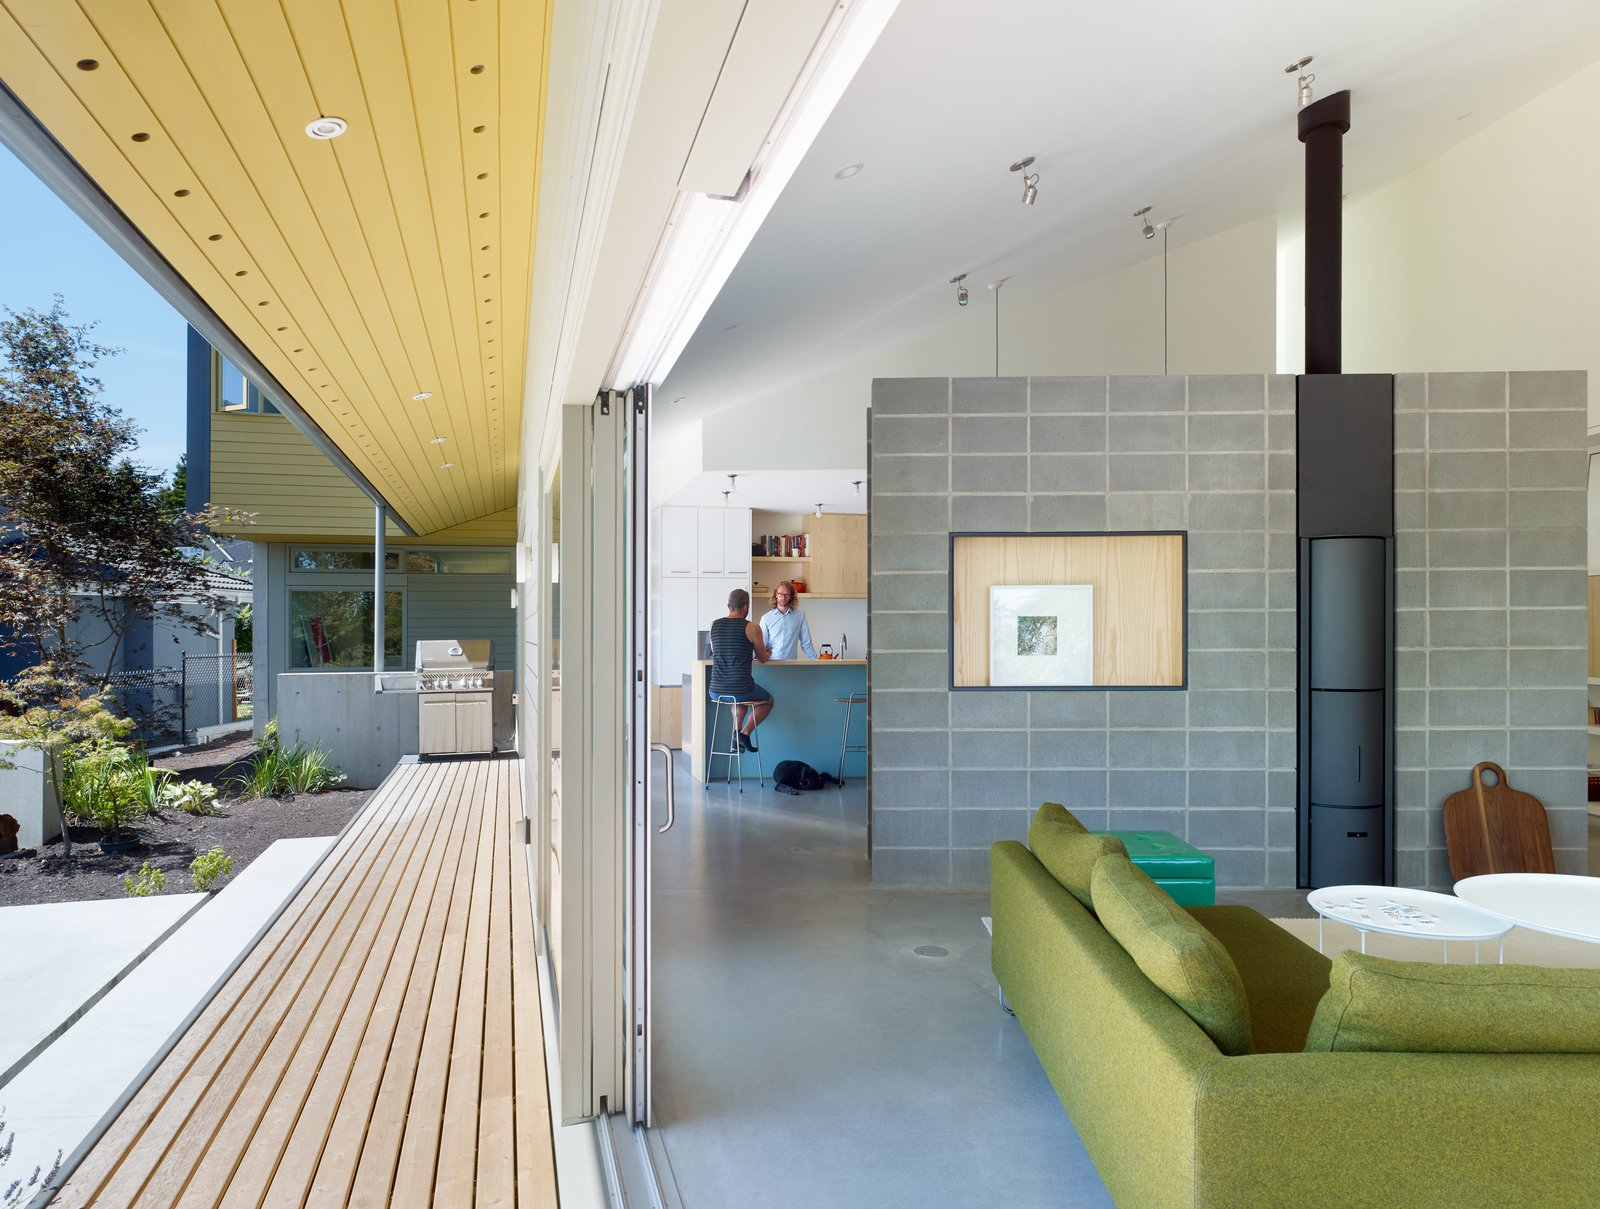 Living Room, Sofa, and Concrete Floor Sliding doors by Mountainview unite the garden and interior of a residence in British Columbia. The underside of the deck overhang is covered in Benjamin Moore's Turmeric paint, a shade also used on the house's front facade. A Canyon sofa by Bensen joins Fat Fat tables by Patricia Urquiola for B&B Italia in the living room; a cinderblock wall with a stove by Stûv divides the space from the kitchen.  Photo 2 of 6 in A Suburban Vancouver Home Edits its Privacy Settings